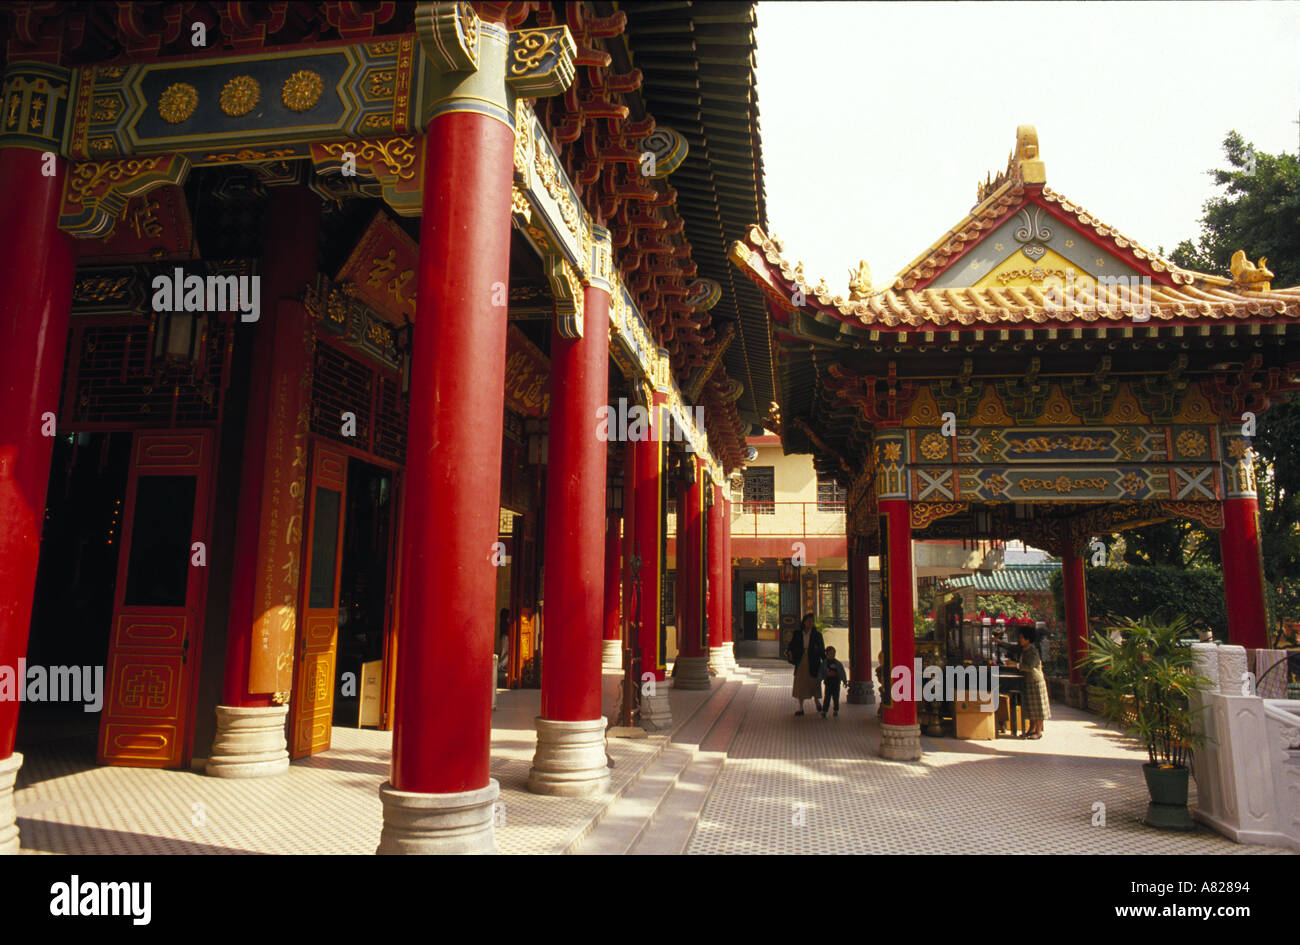 chinese architecture in ching chuen koong temple ching chung koon